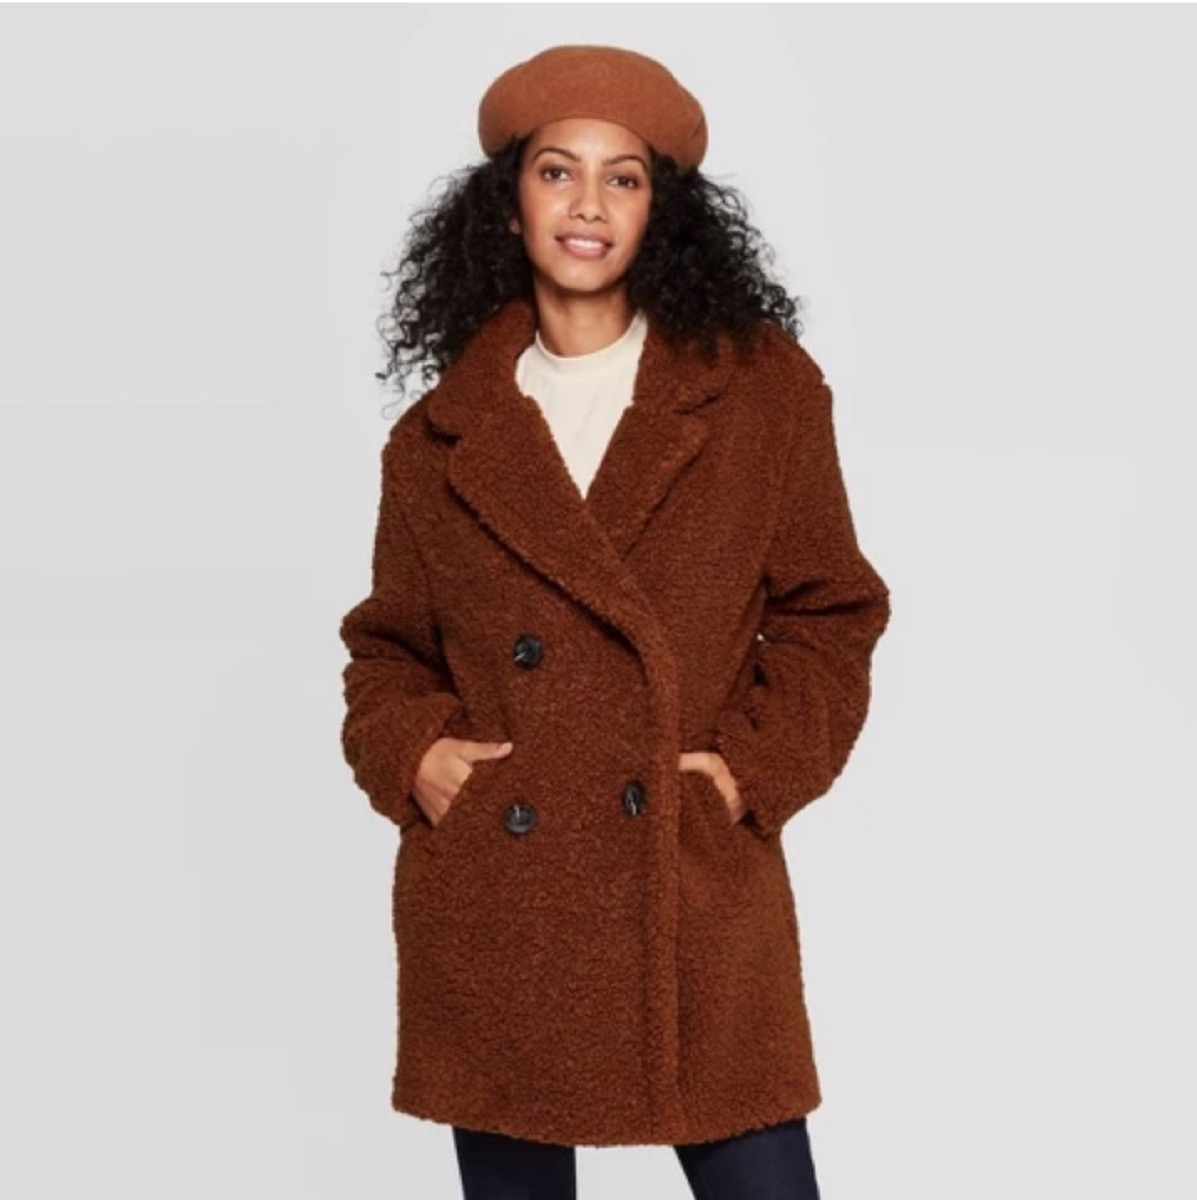 woman in brown teddy bear coat and beret, women's coats for winter